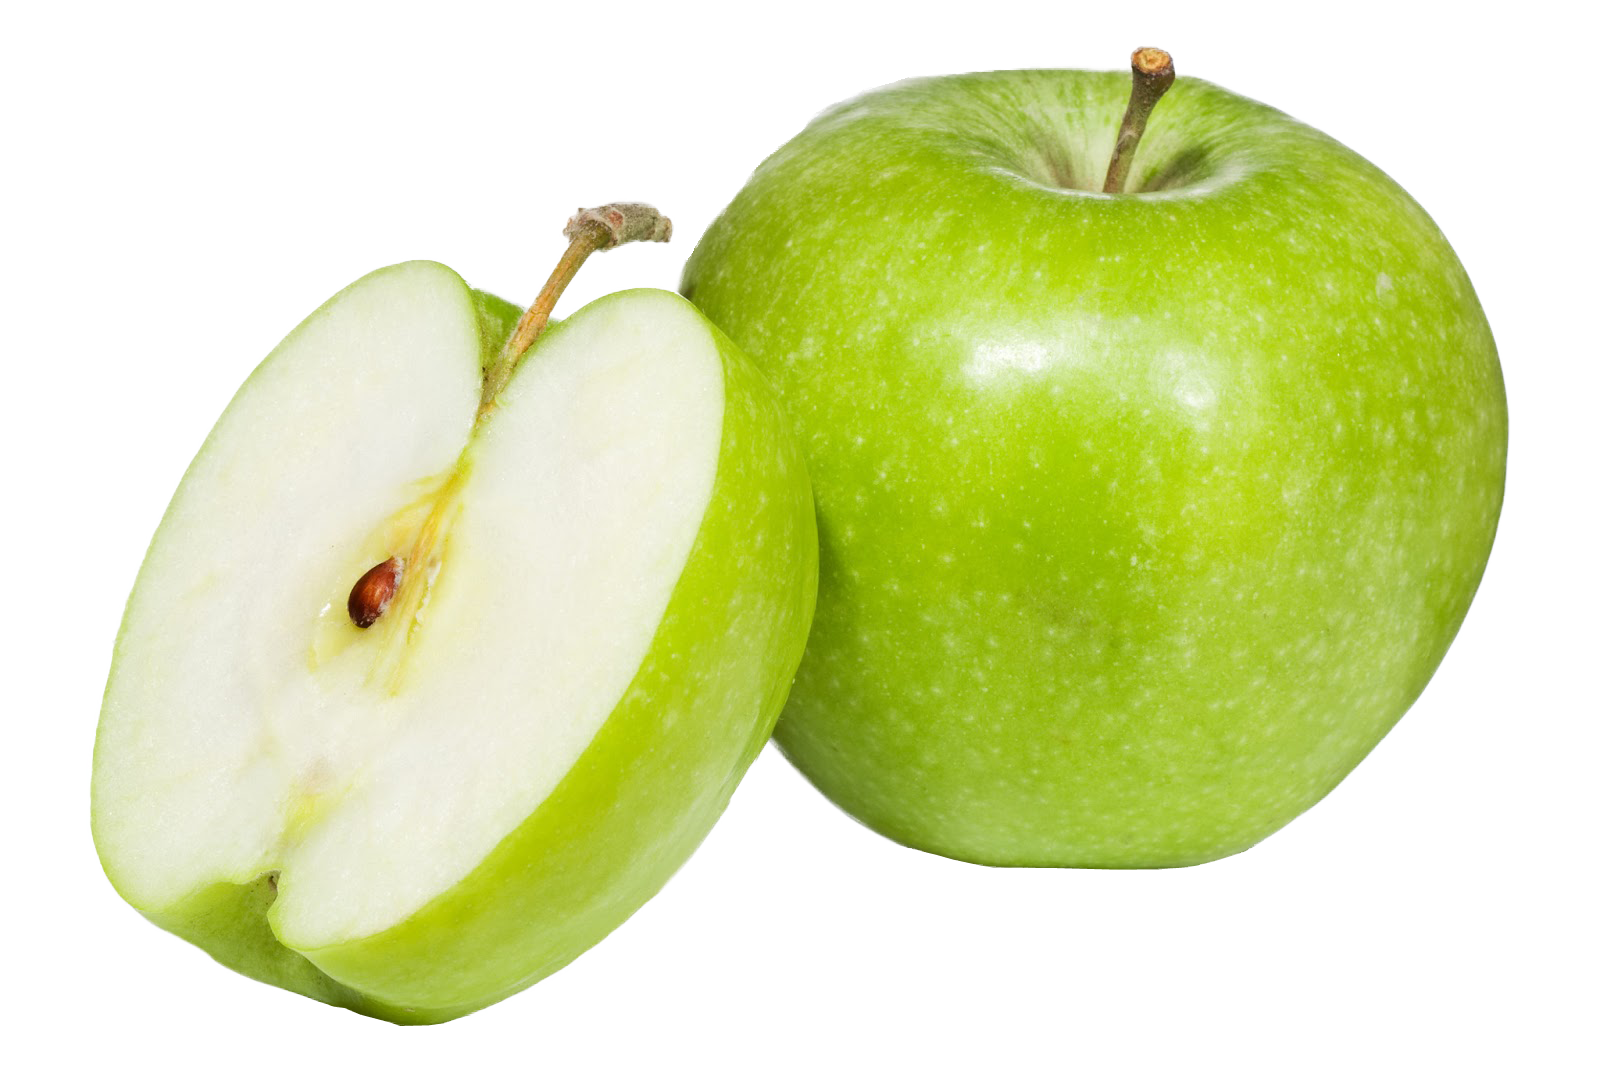 Apple png images free. Pear clipart buah